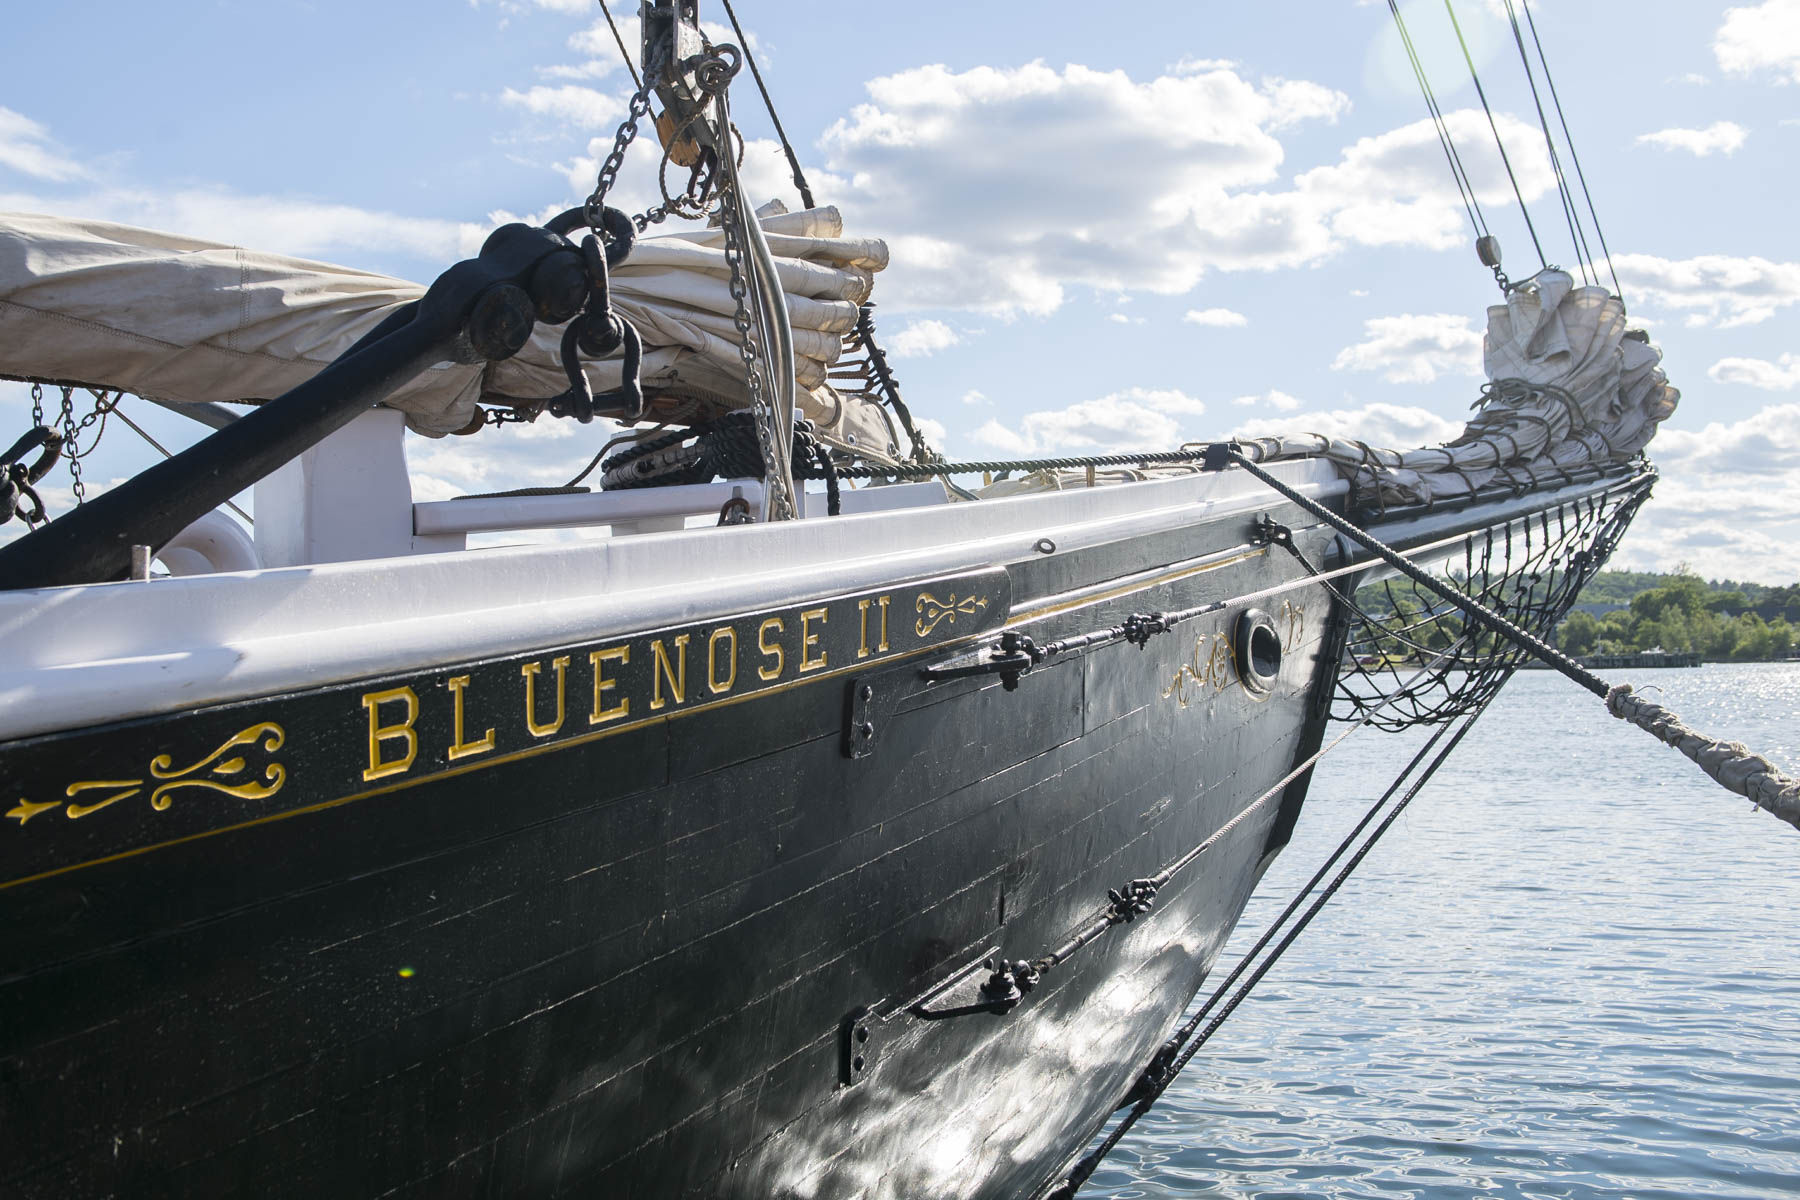 Bluenose II was built in 1963 and is a replica of the original schooner, which was a celebrated racing ship and fishing vessel. Each year, 12 youth are hired to be deckhands.